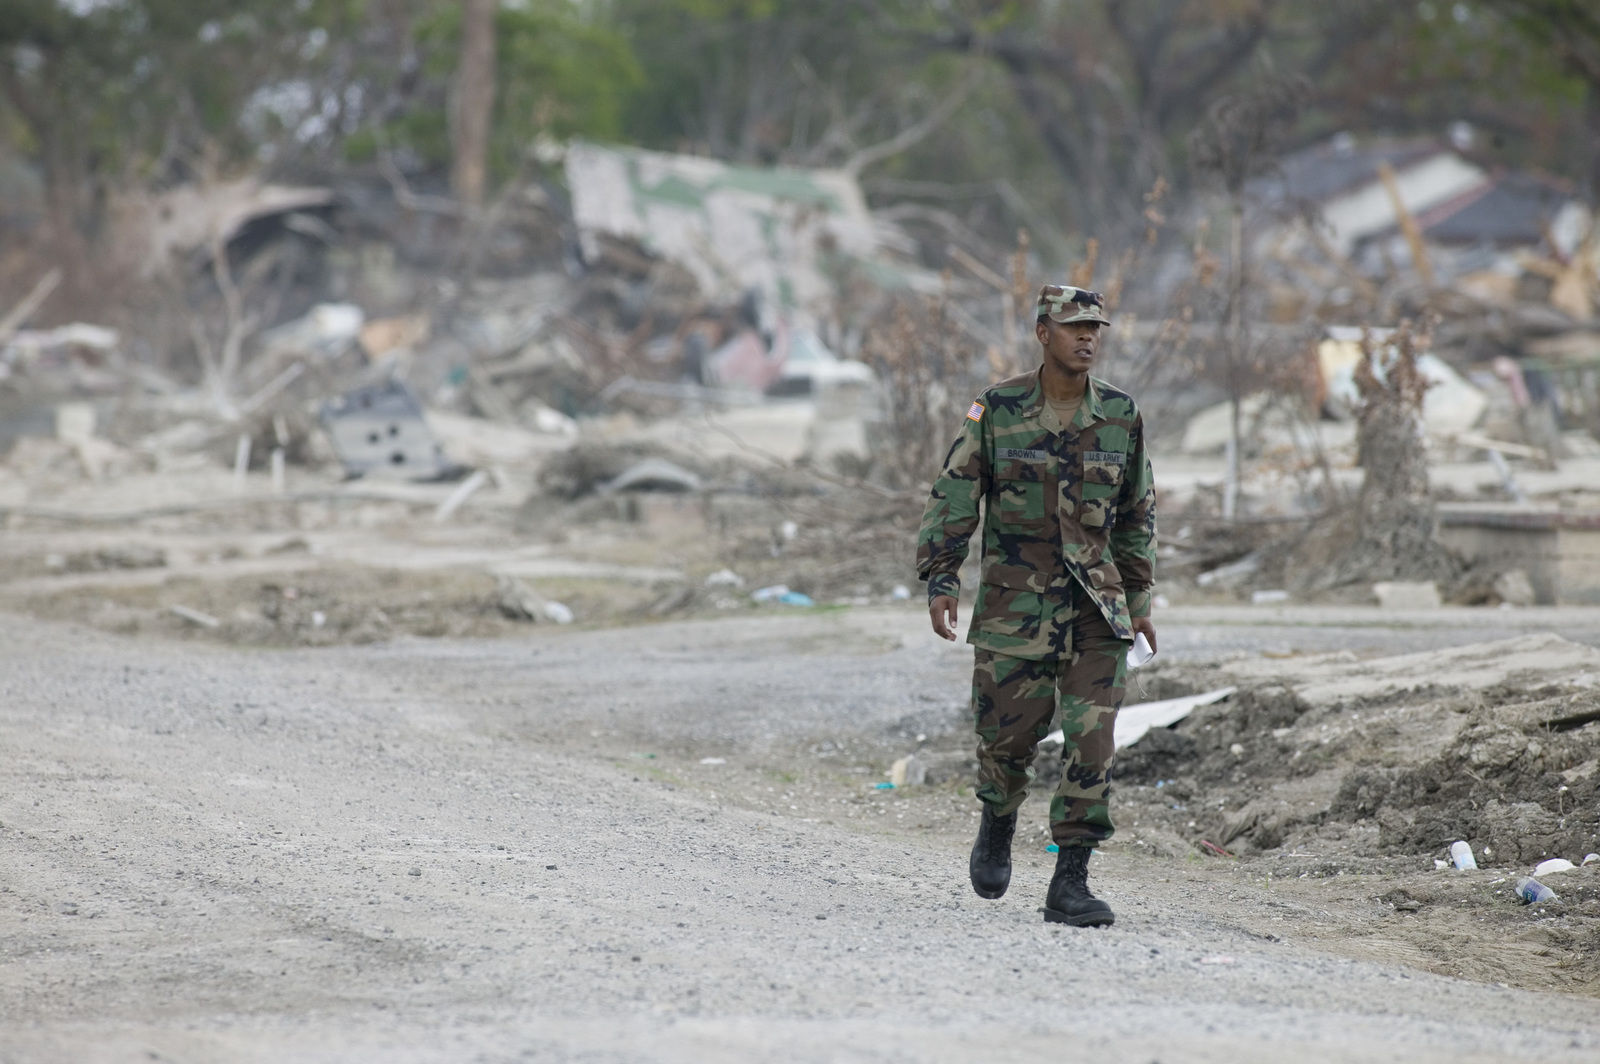 [Hurricane Katrina] New Orleans, LA., 11/05/2005-- A National Guardsman walks through a residential area that was reduced to debris.  The military was called on to help patrol the Lower 9th Ward following Hurricane Katrina.  Andrea Booher/FEMA